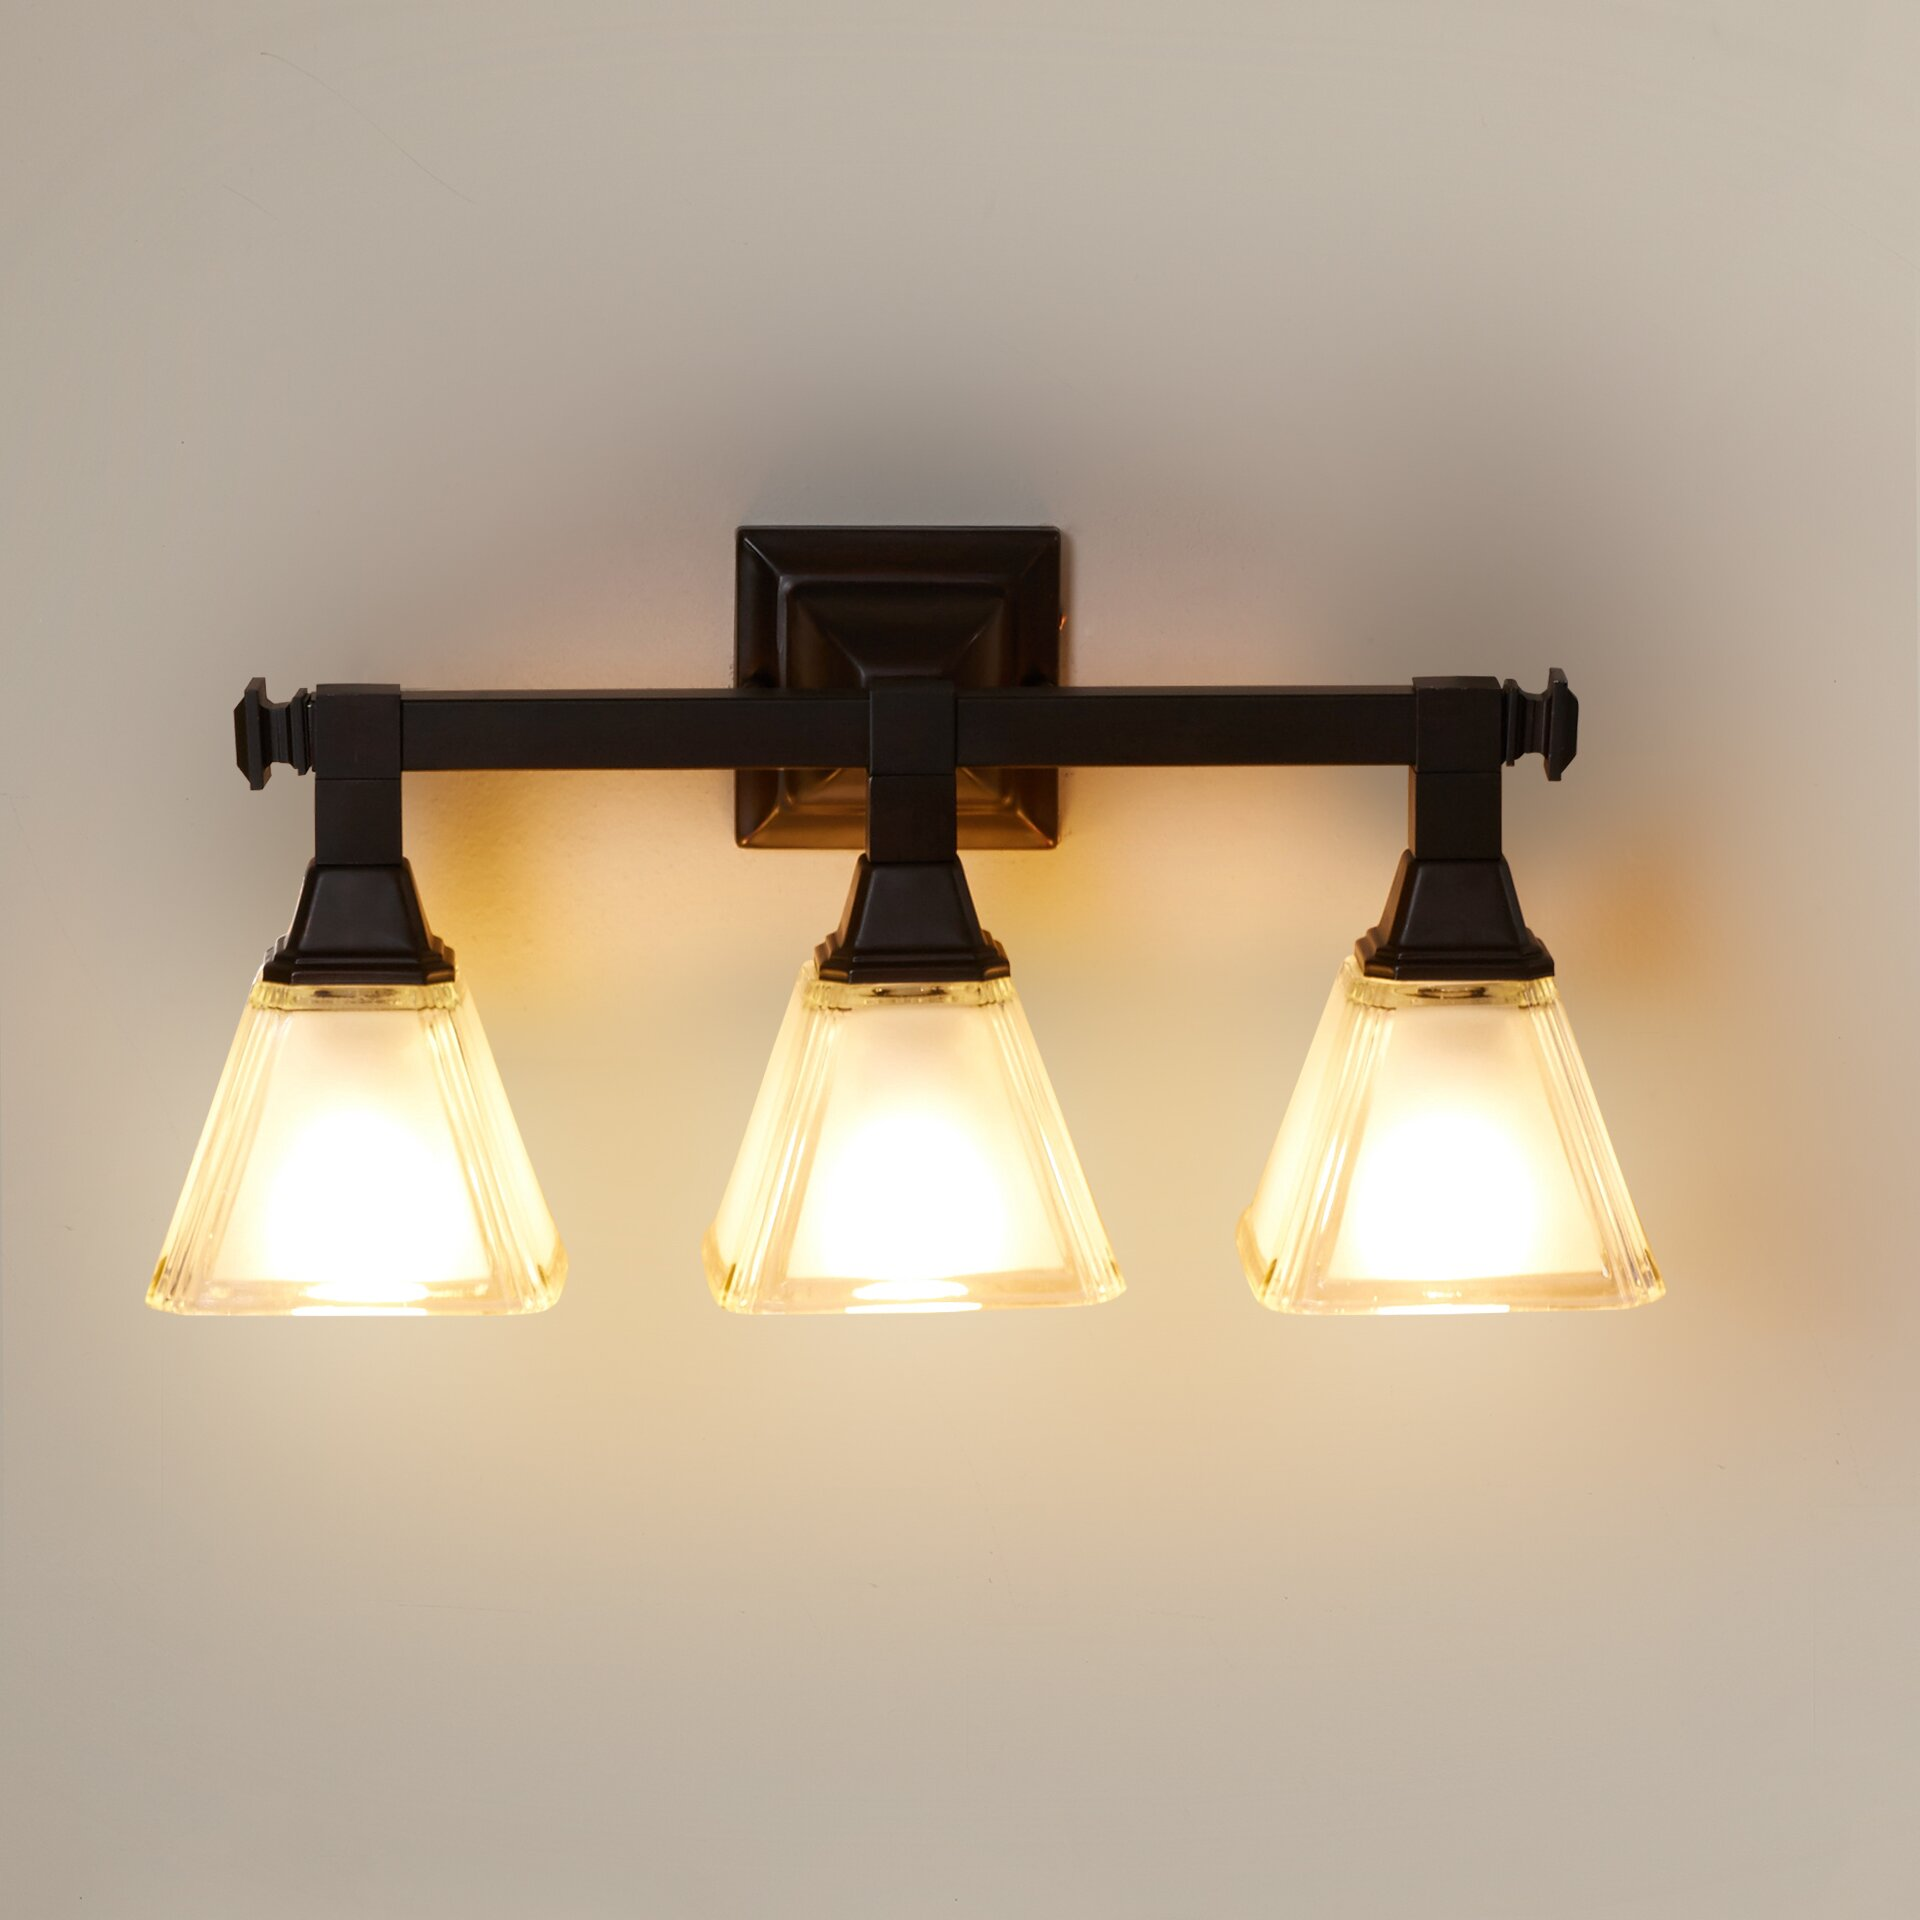 Charlton Home Gahagan 3 Light Vanity Light & Reviews